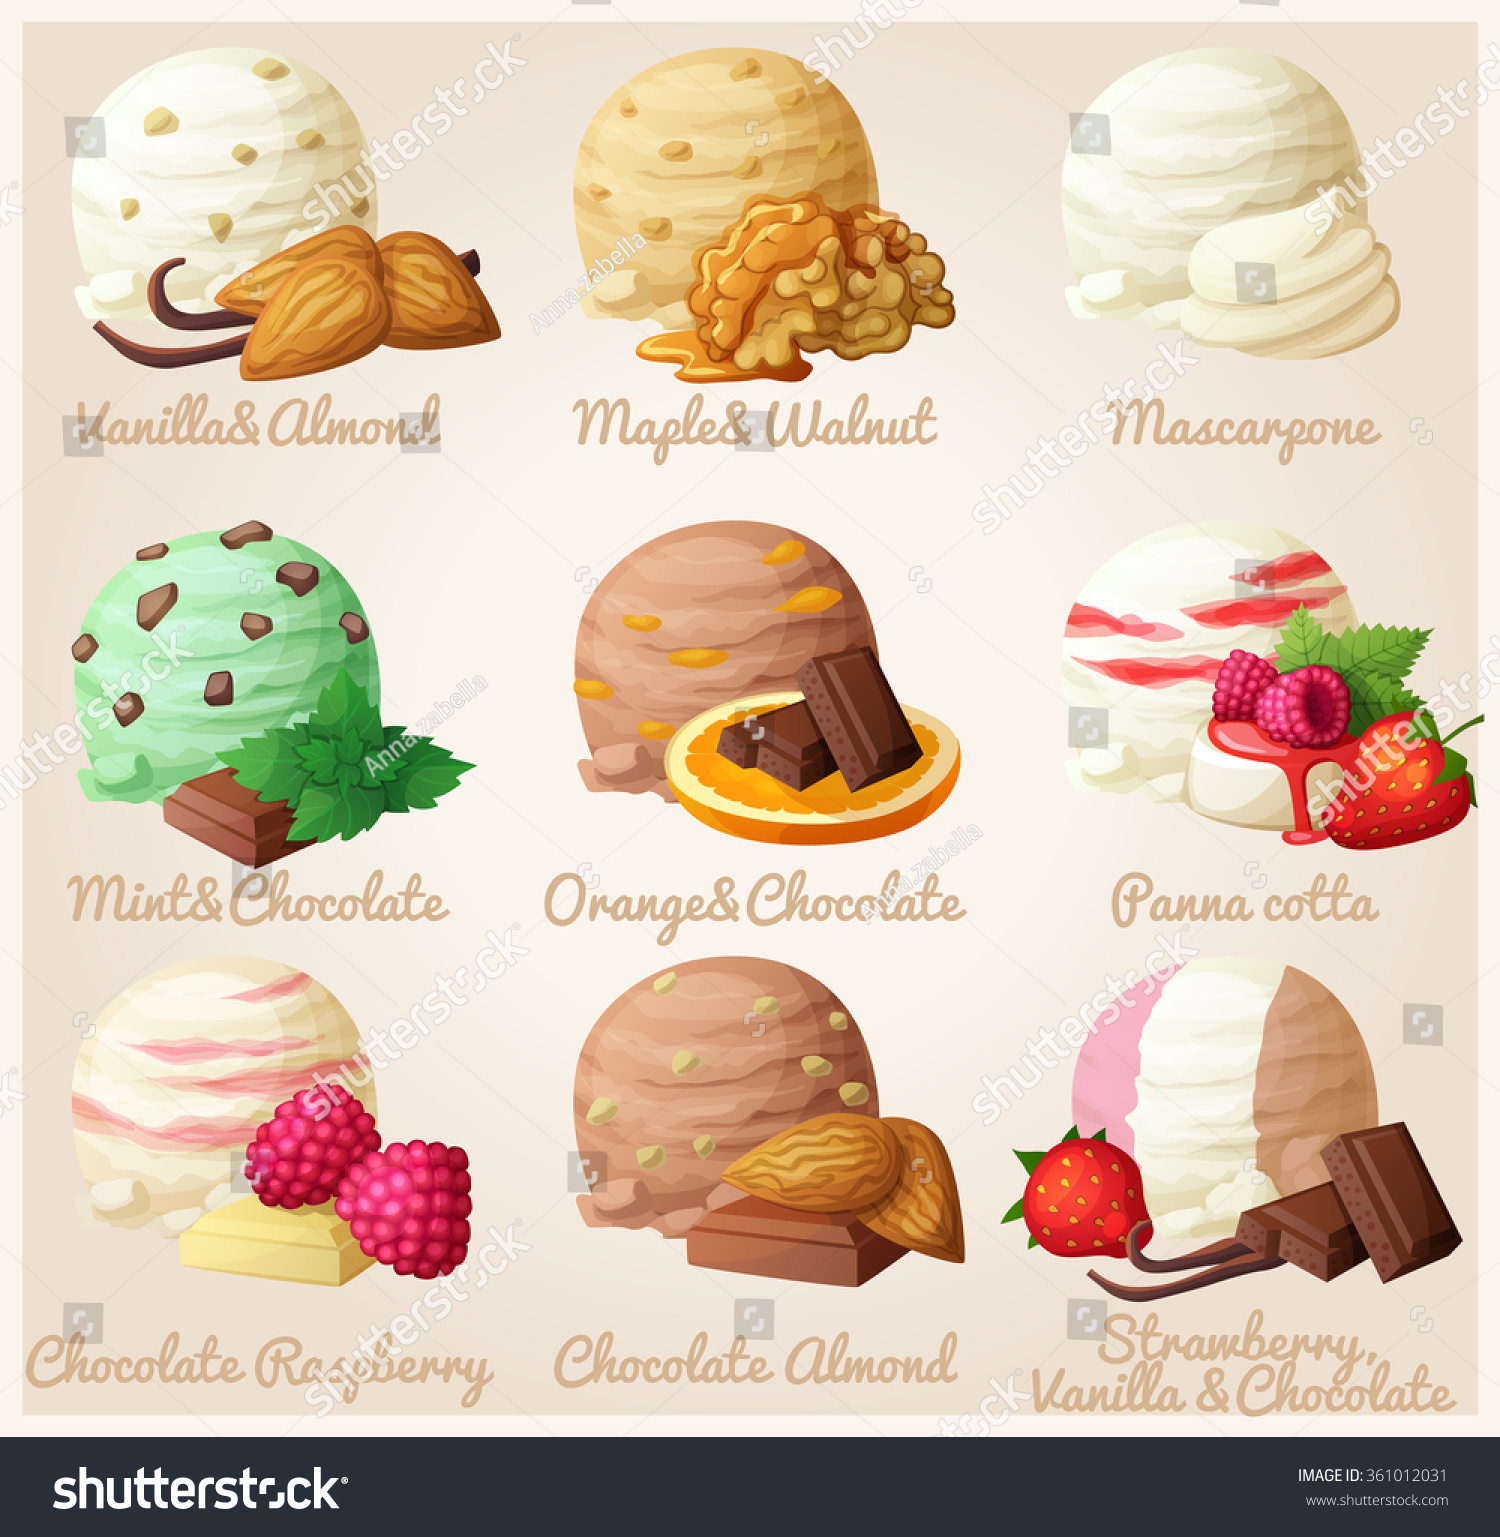 Image result for ice cream flavour